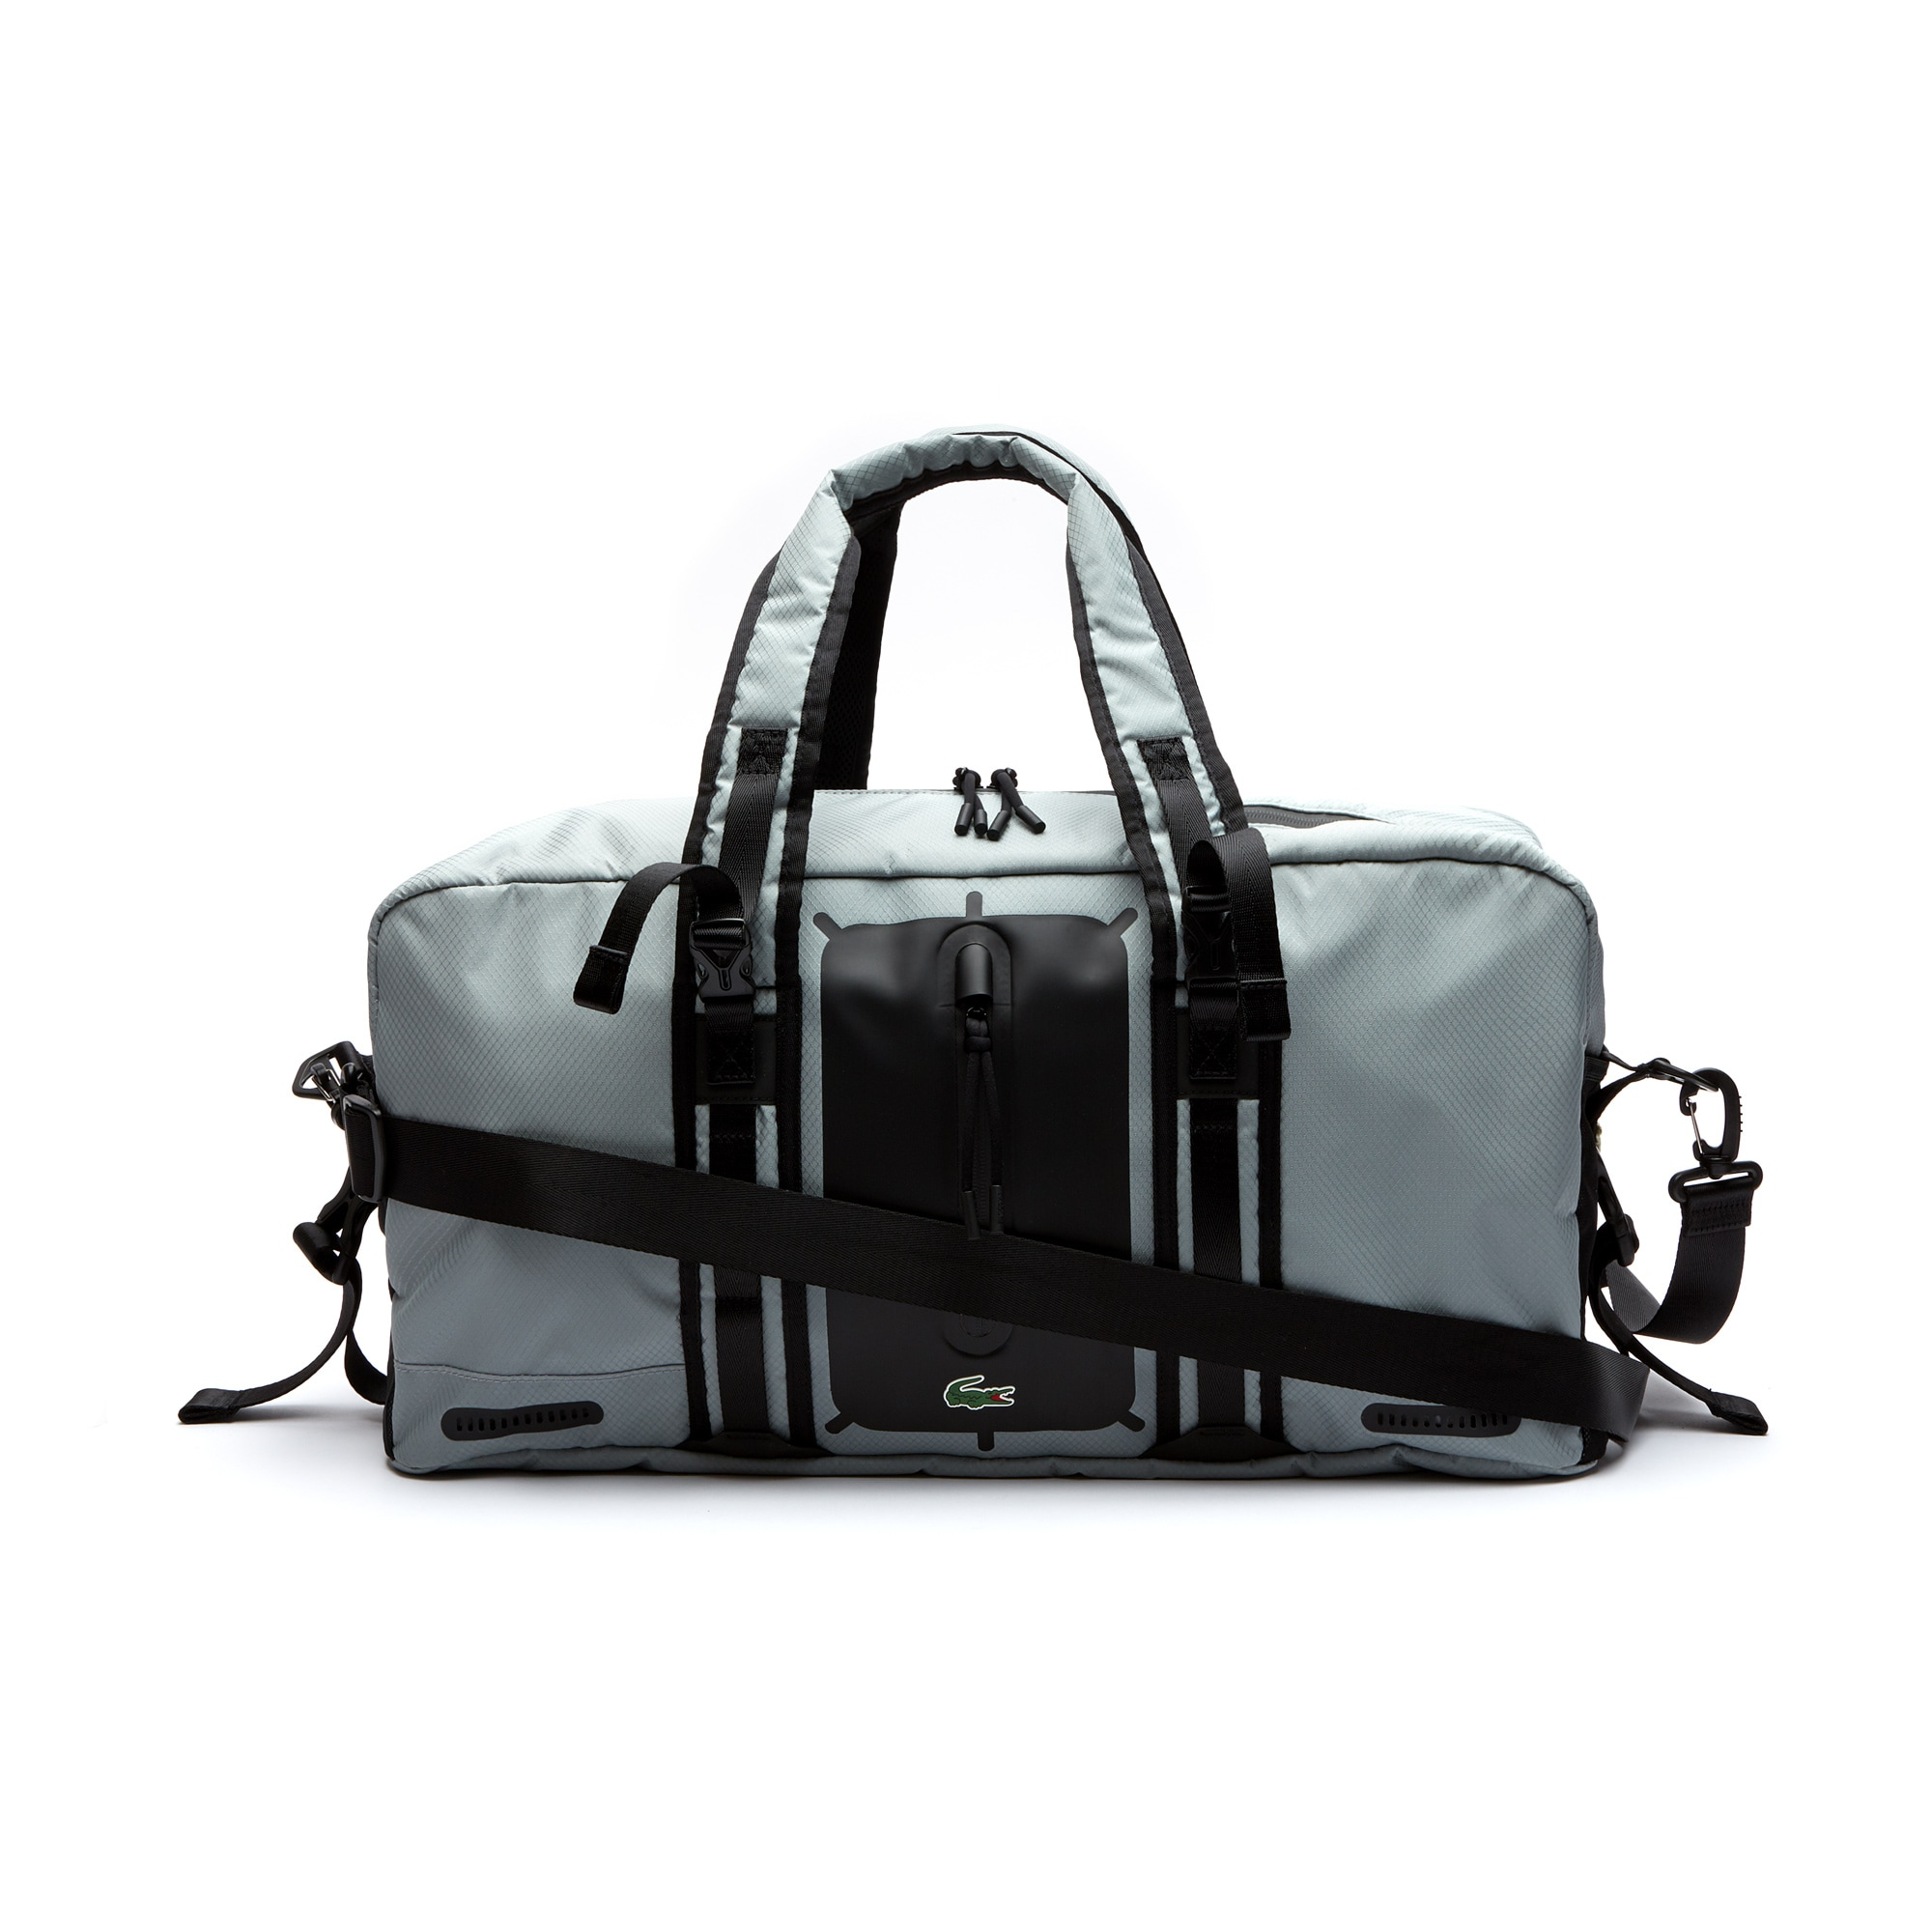 라코스테 스포츠 더플백 Mens Lacoste SPORT Match Point Nylon Roll Bag,HIGH-RISE BLACK